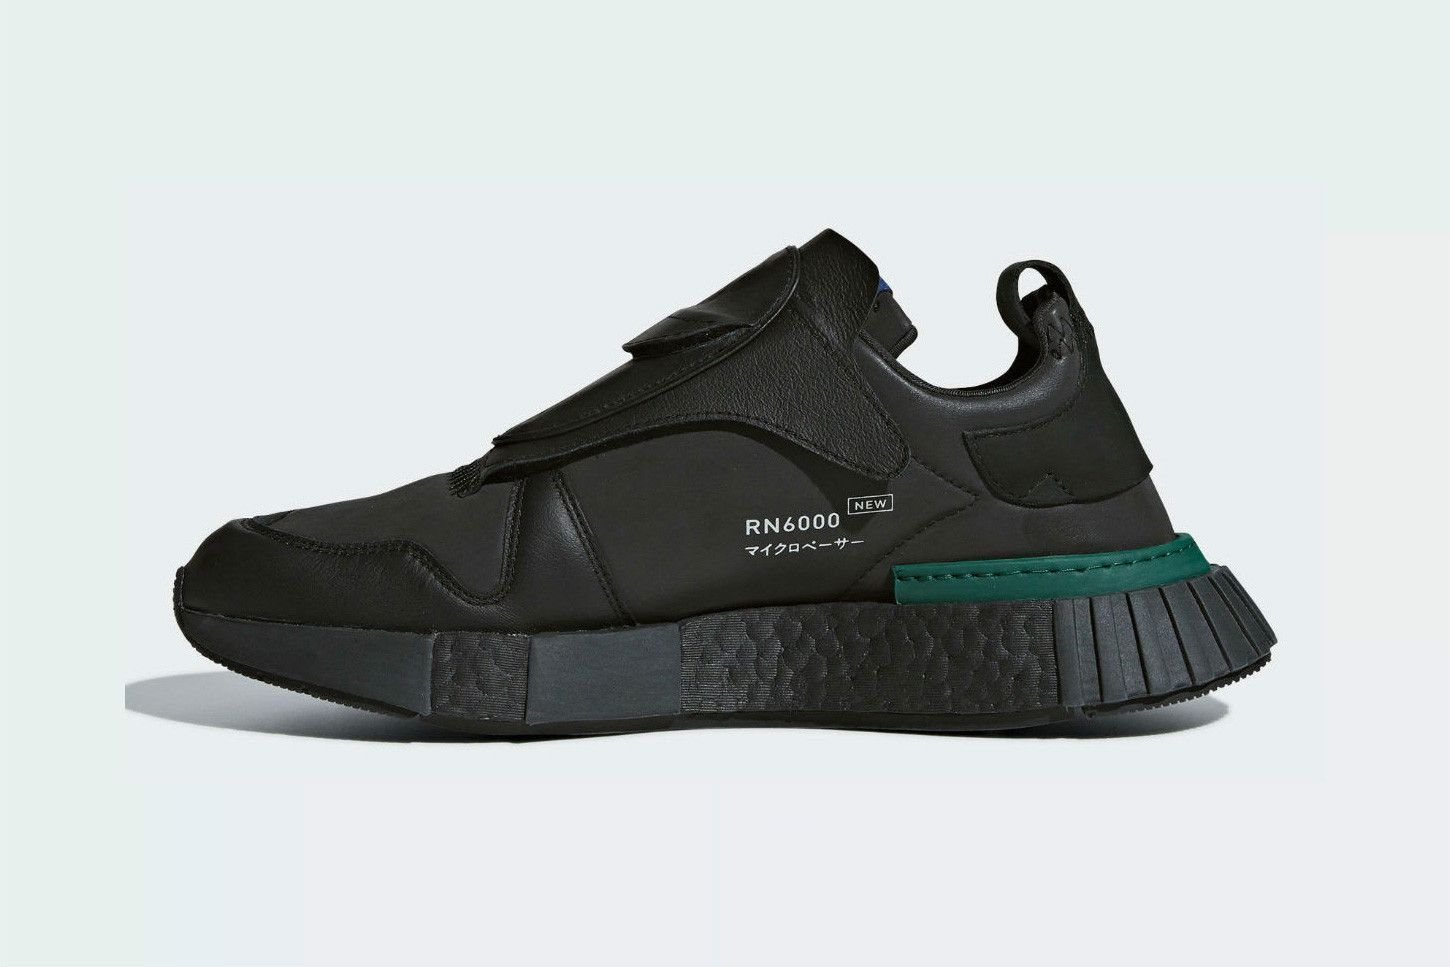 f7a66a57b44c adidas Originals Futurepacer Black colorway Release Date price sneaker  leather